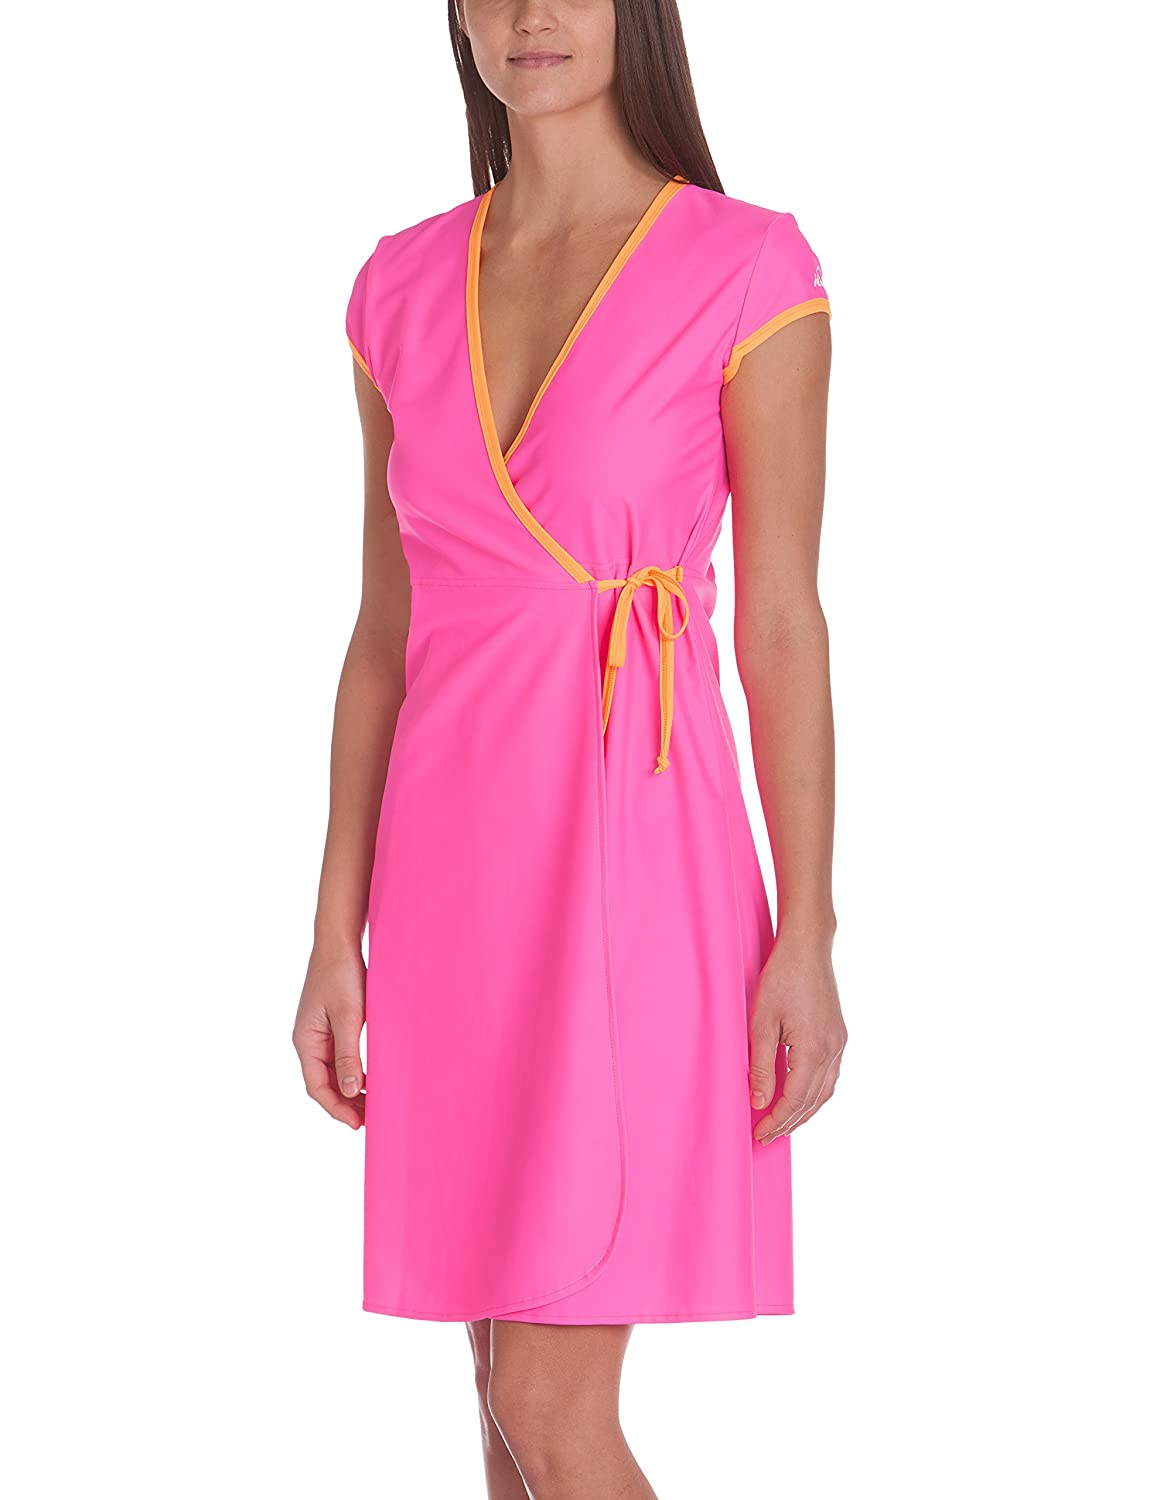 iQ-UV Damen 300 Beachdress, Schutz Strandkleid Wickelkleid